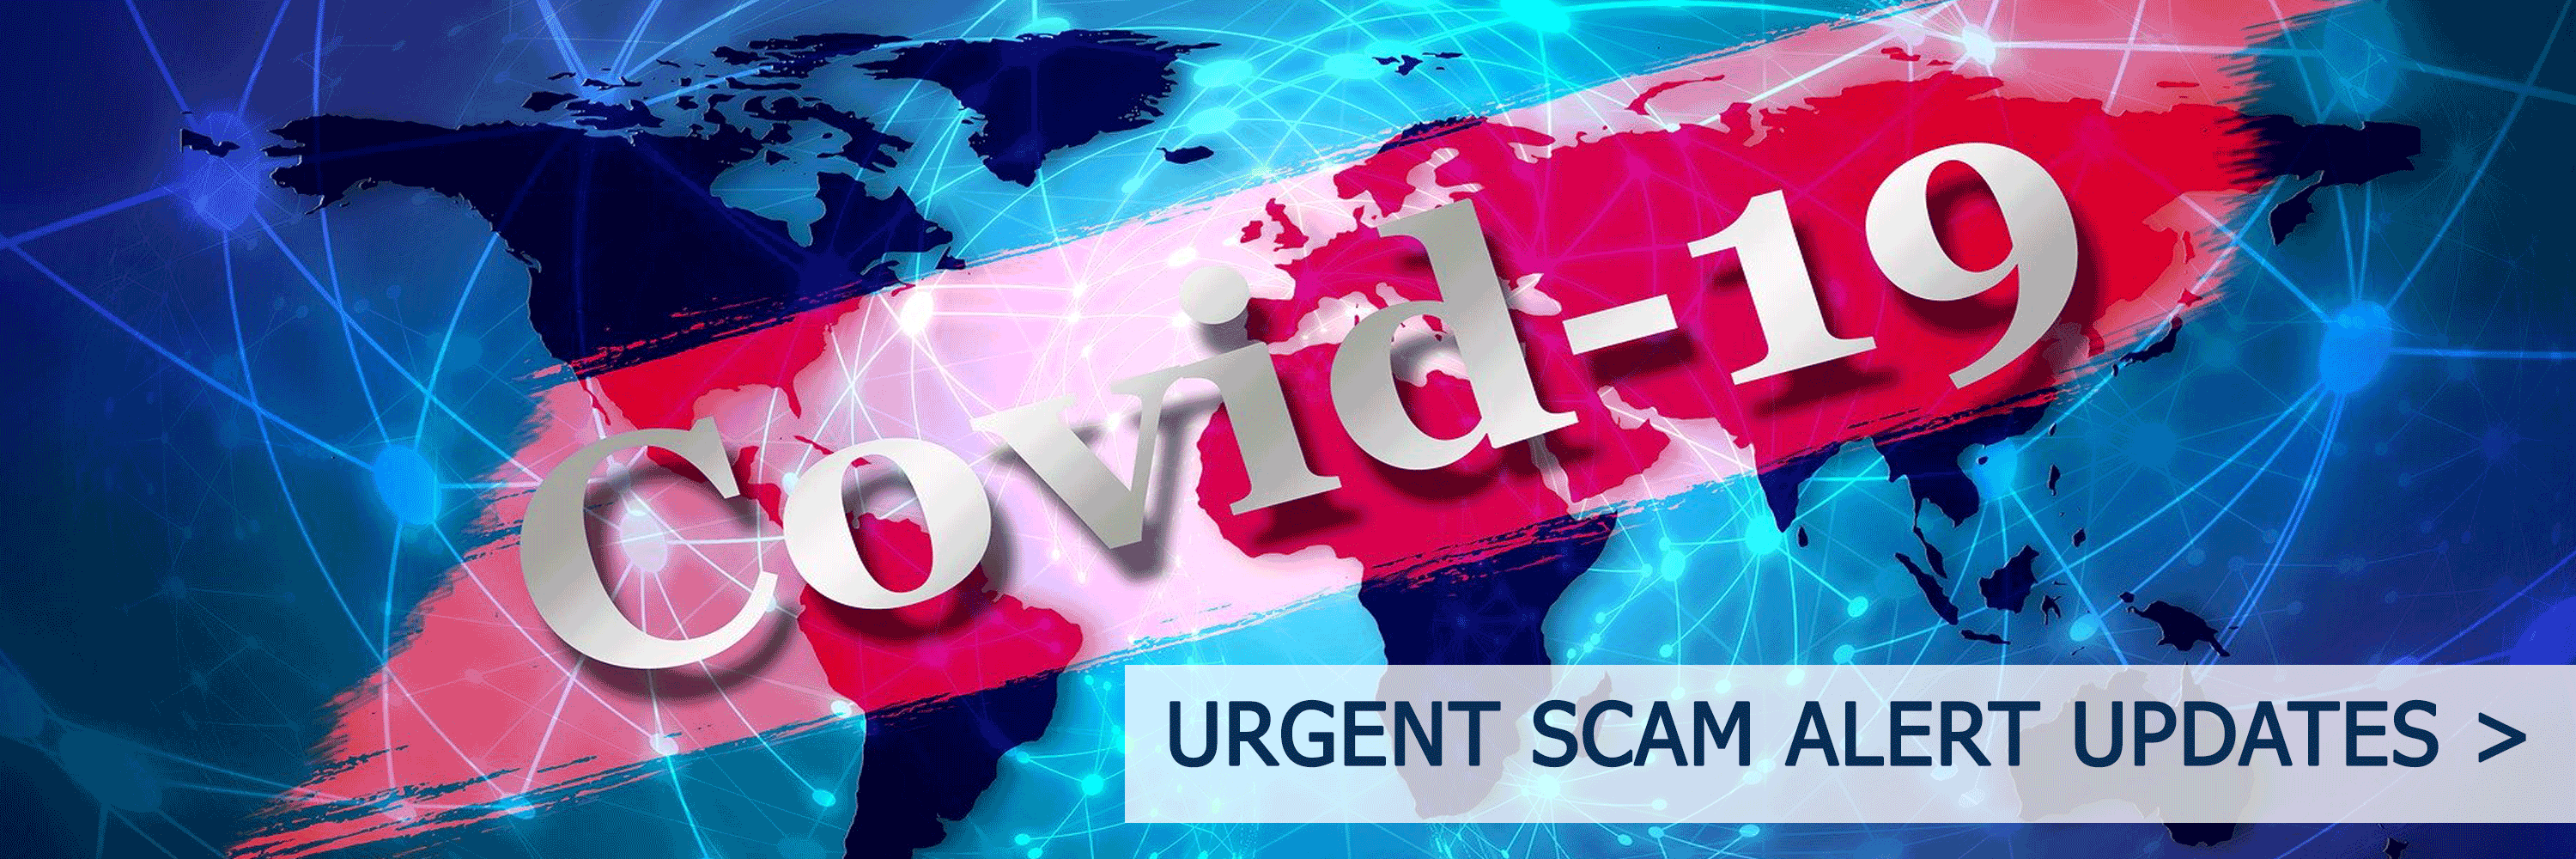 Important COVID-19 Scam Alert!